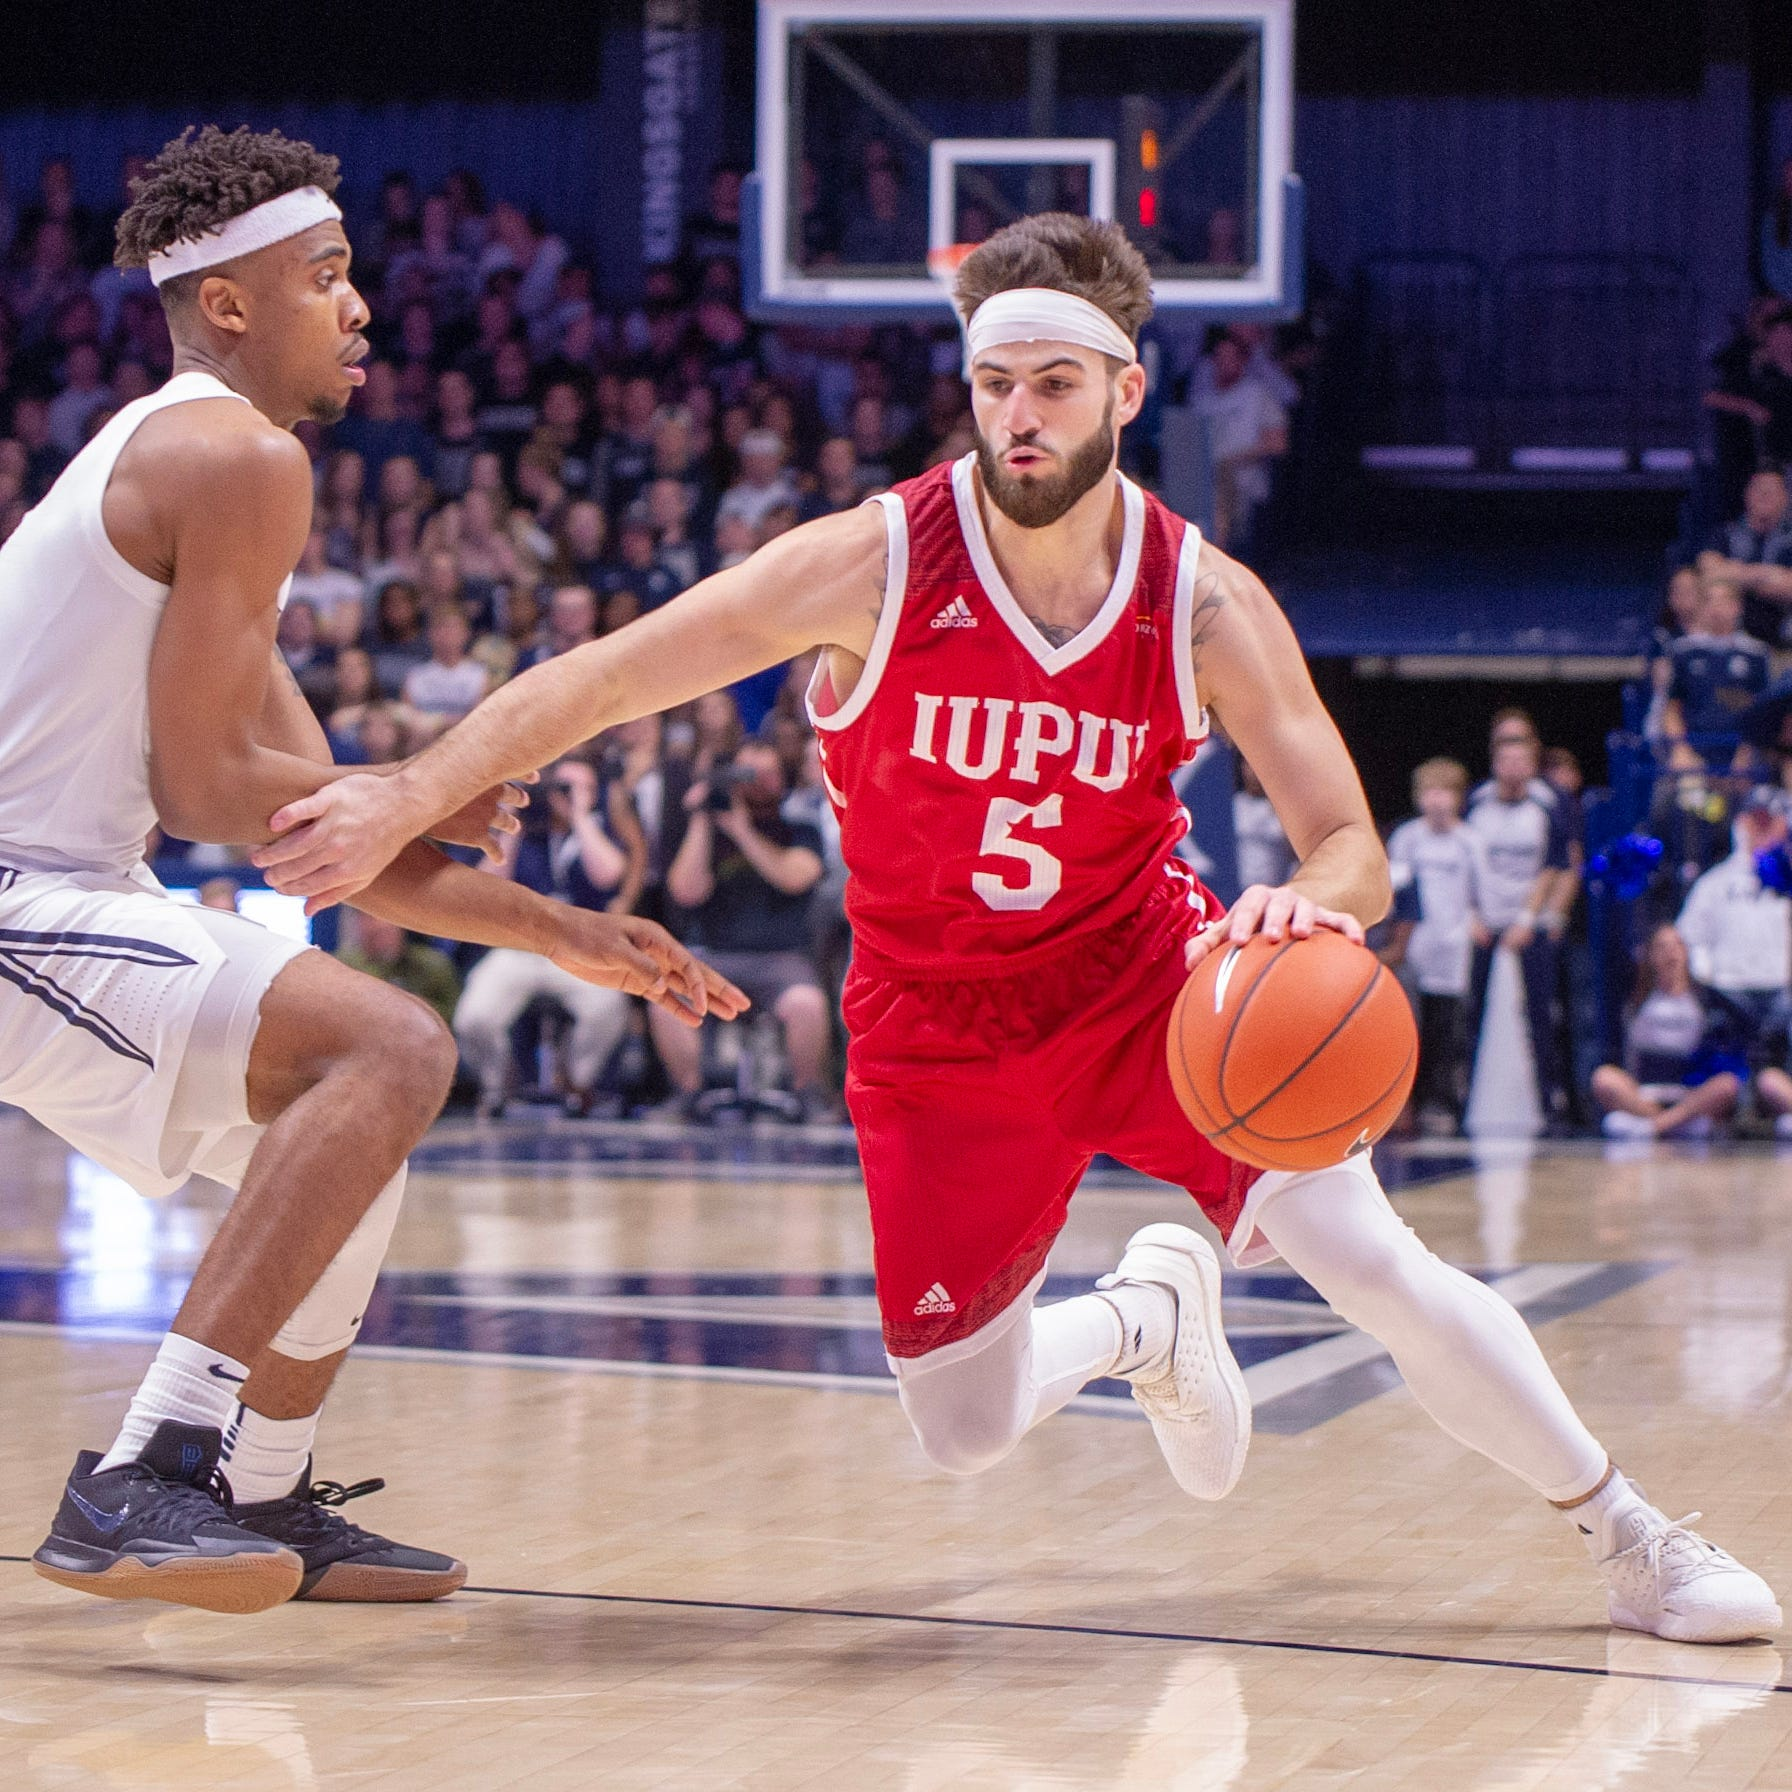 IUPUI's leading scorer Camron Justice to transfer